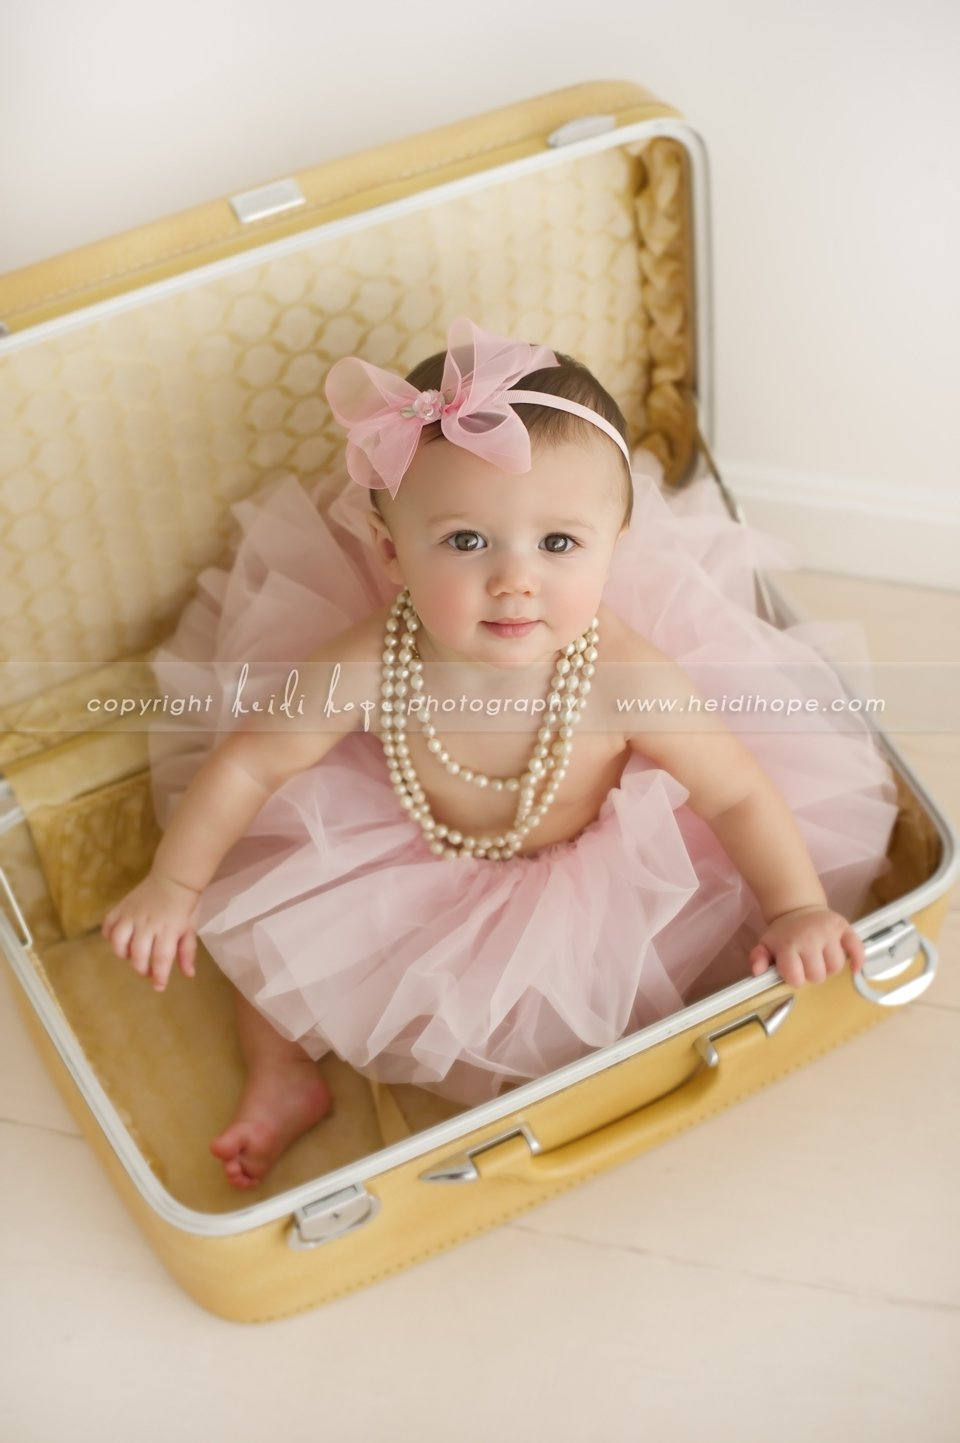 10 Stunning 6 Month Old Photo Ideas awesome 1 month old baby girl photo ideas selection photo and 1 2021